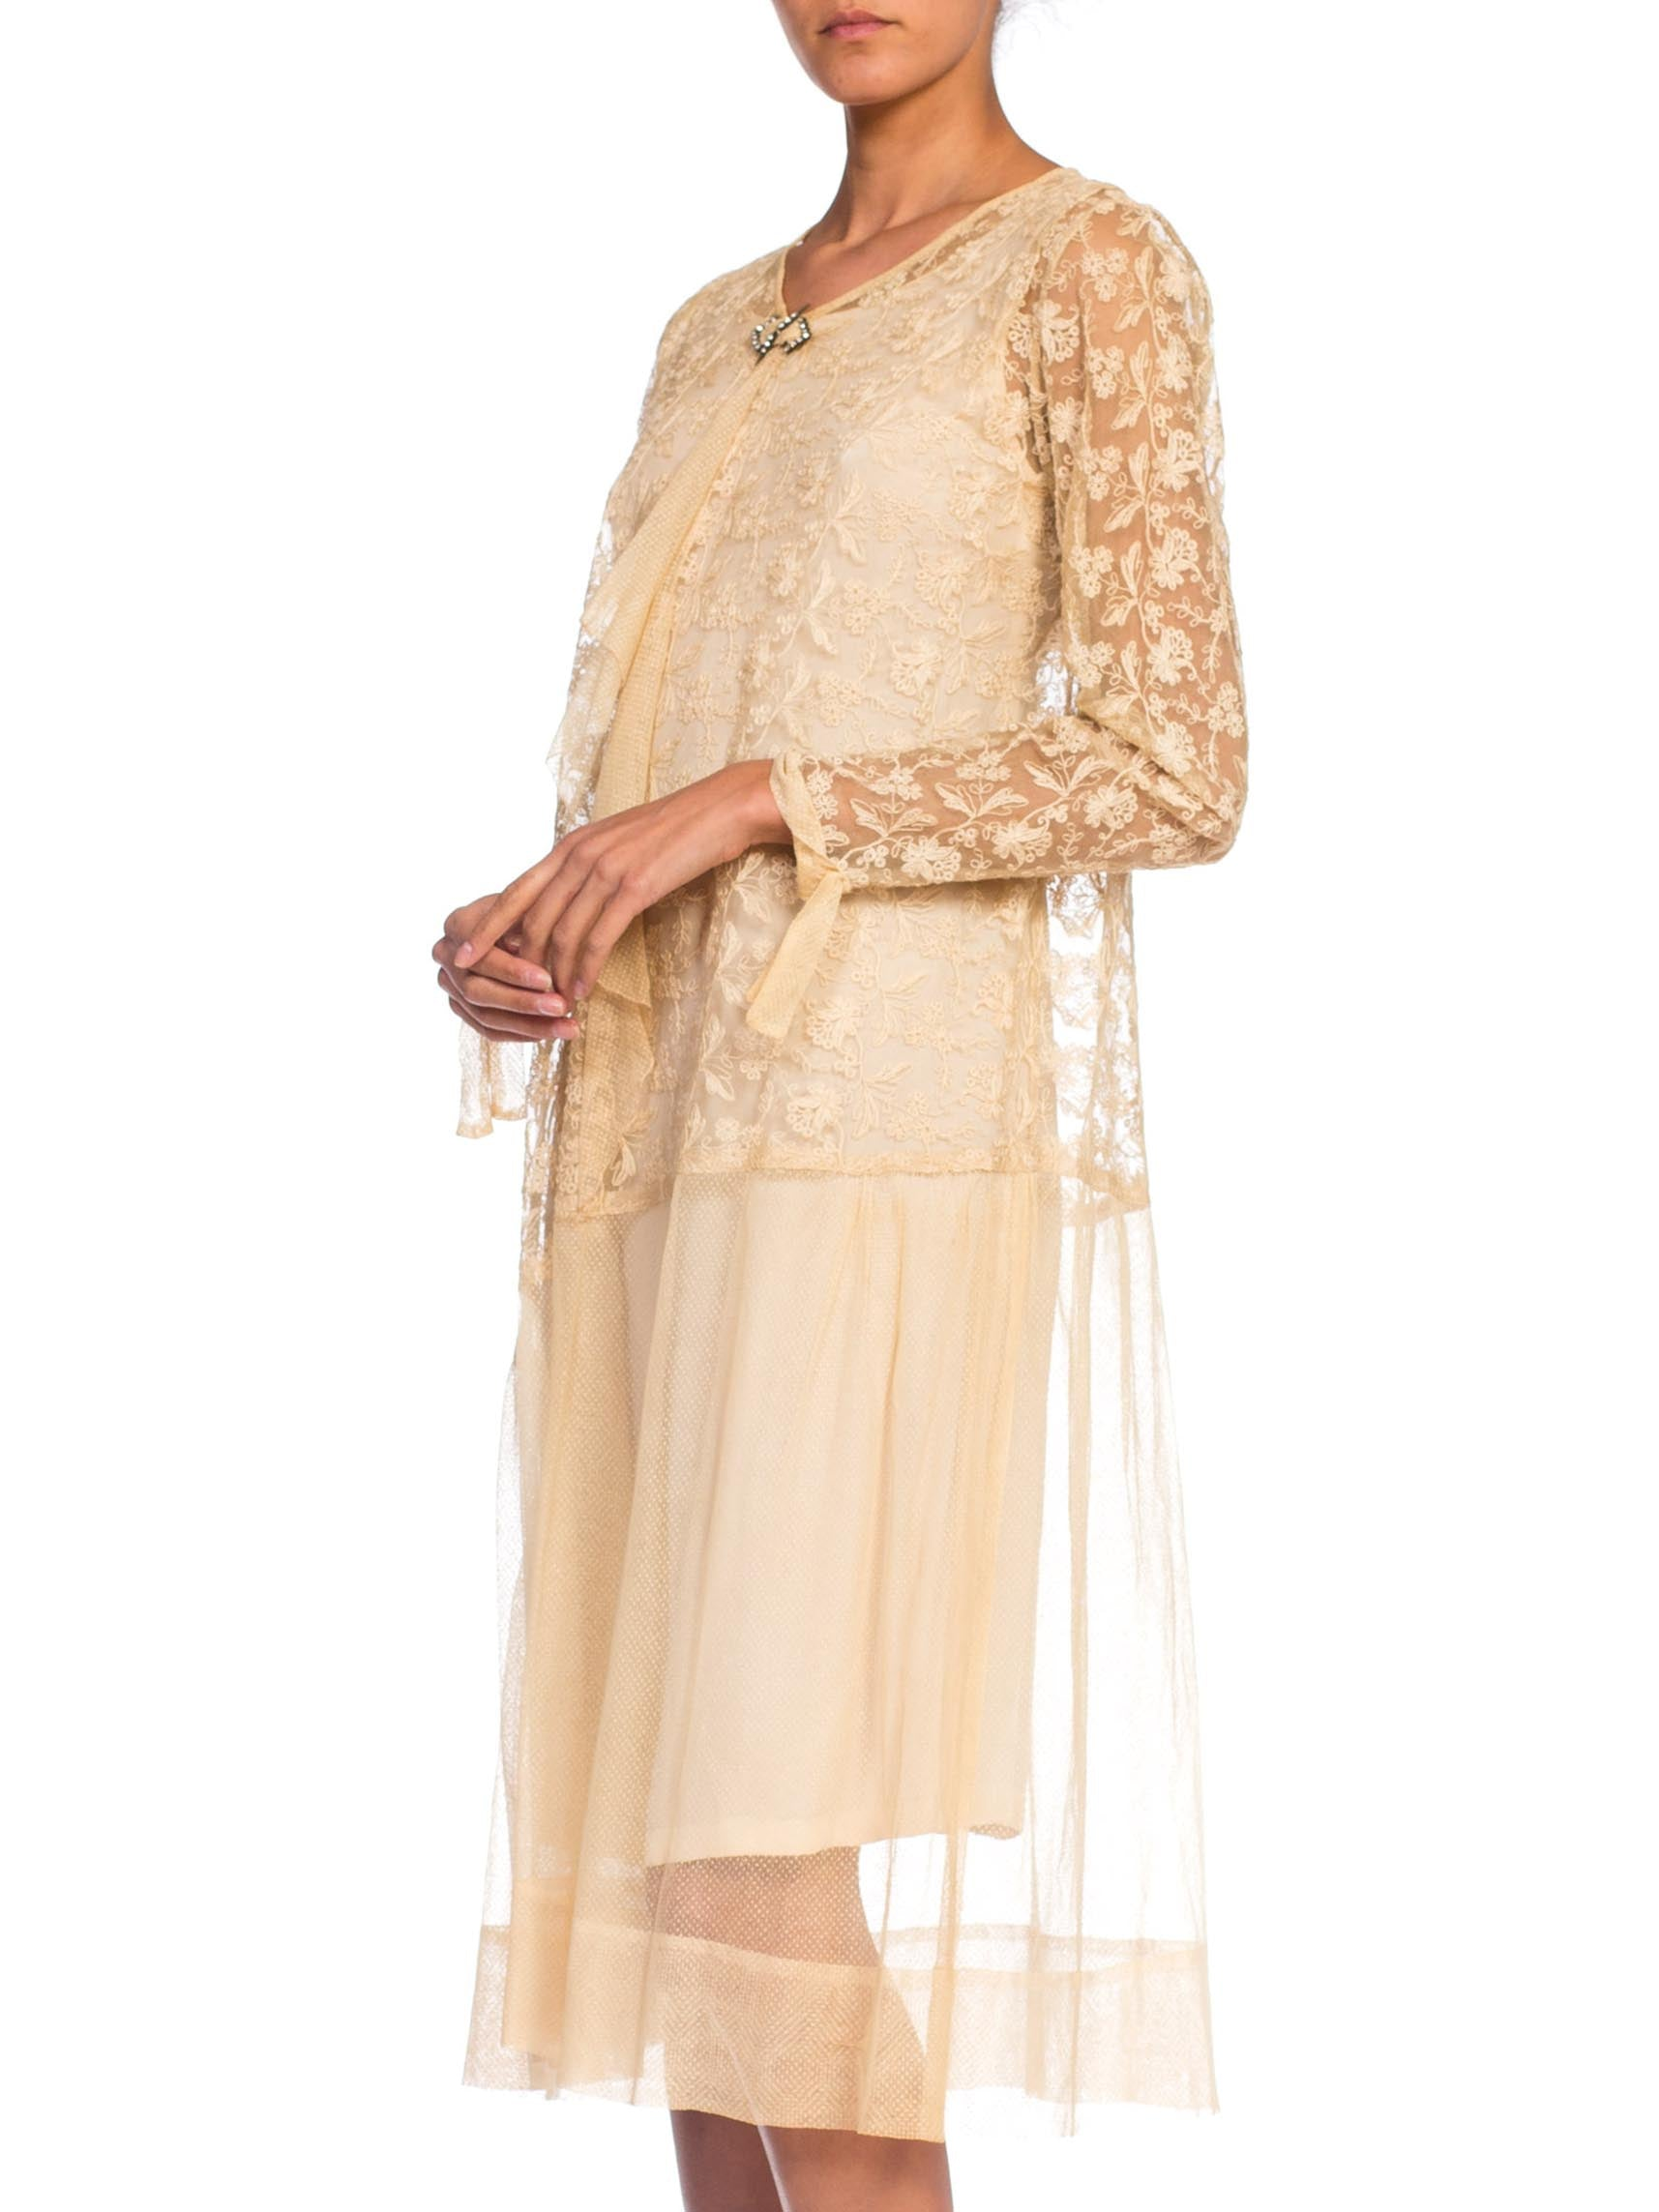 1920S  Beige Cotton Embroidered Tulle & Lace Flapper Era Tea Dress With Sleeves Jabot